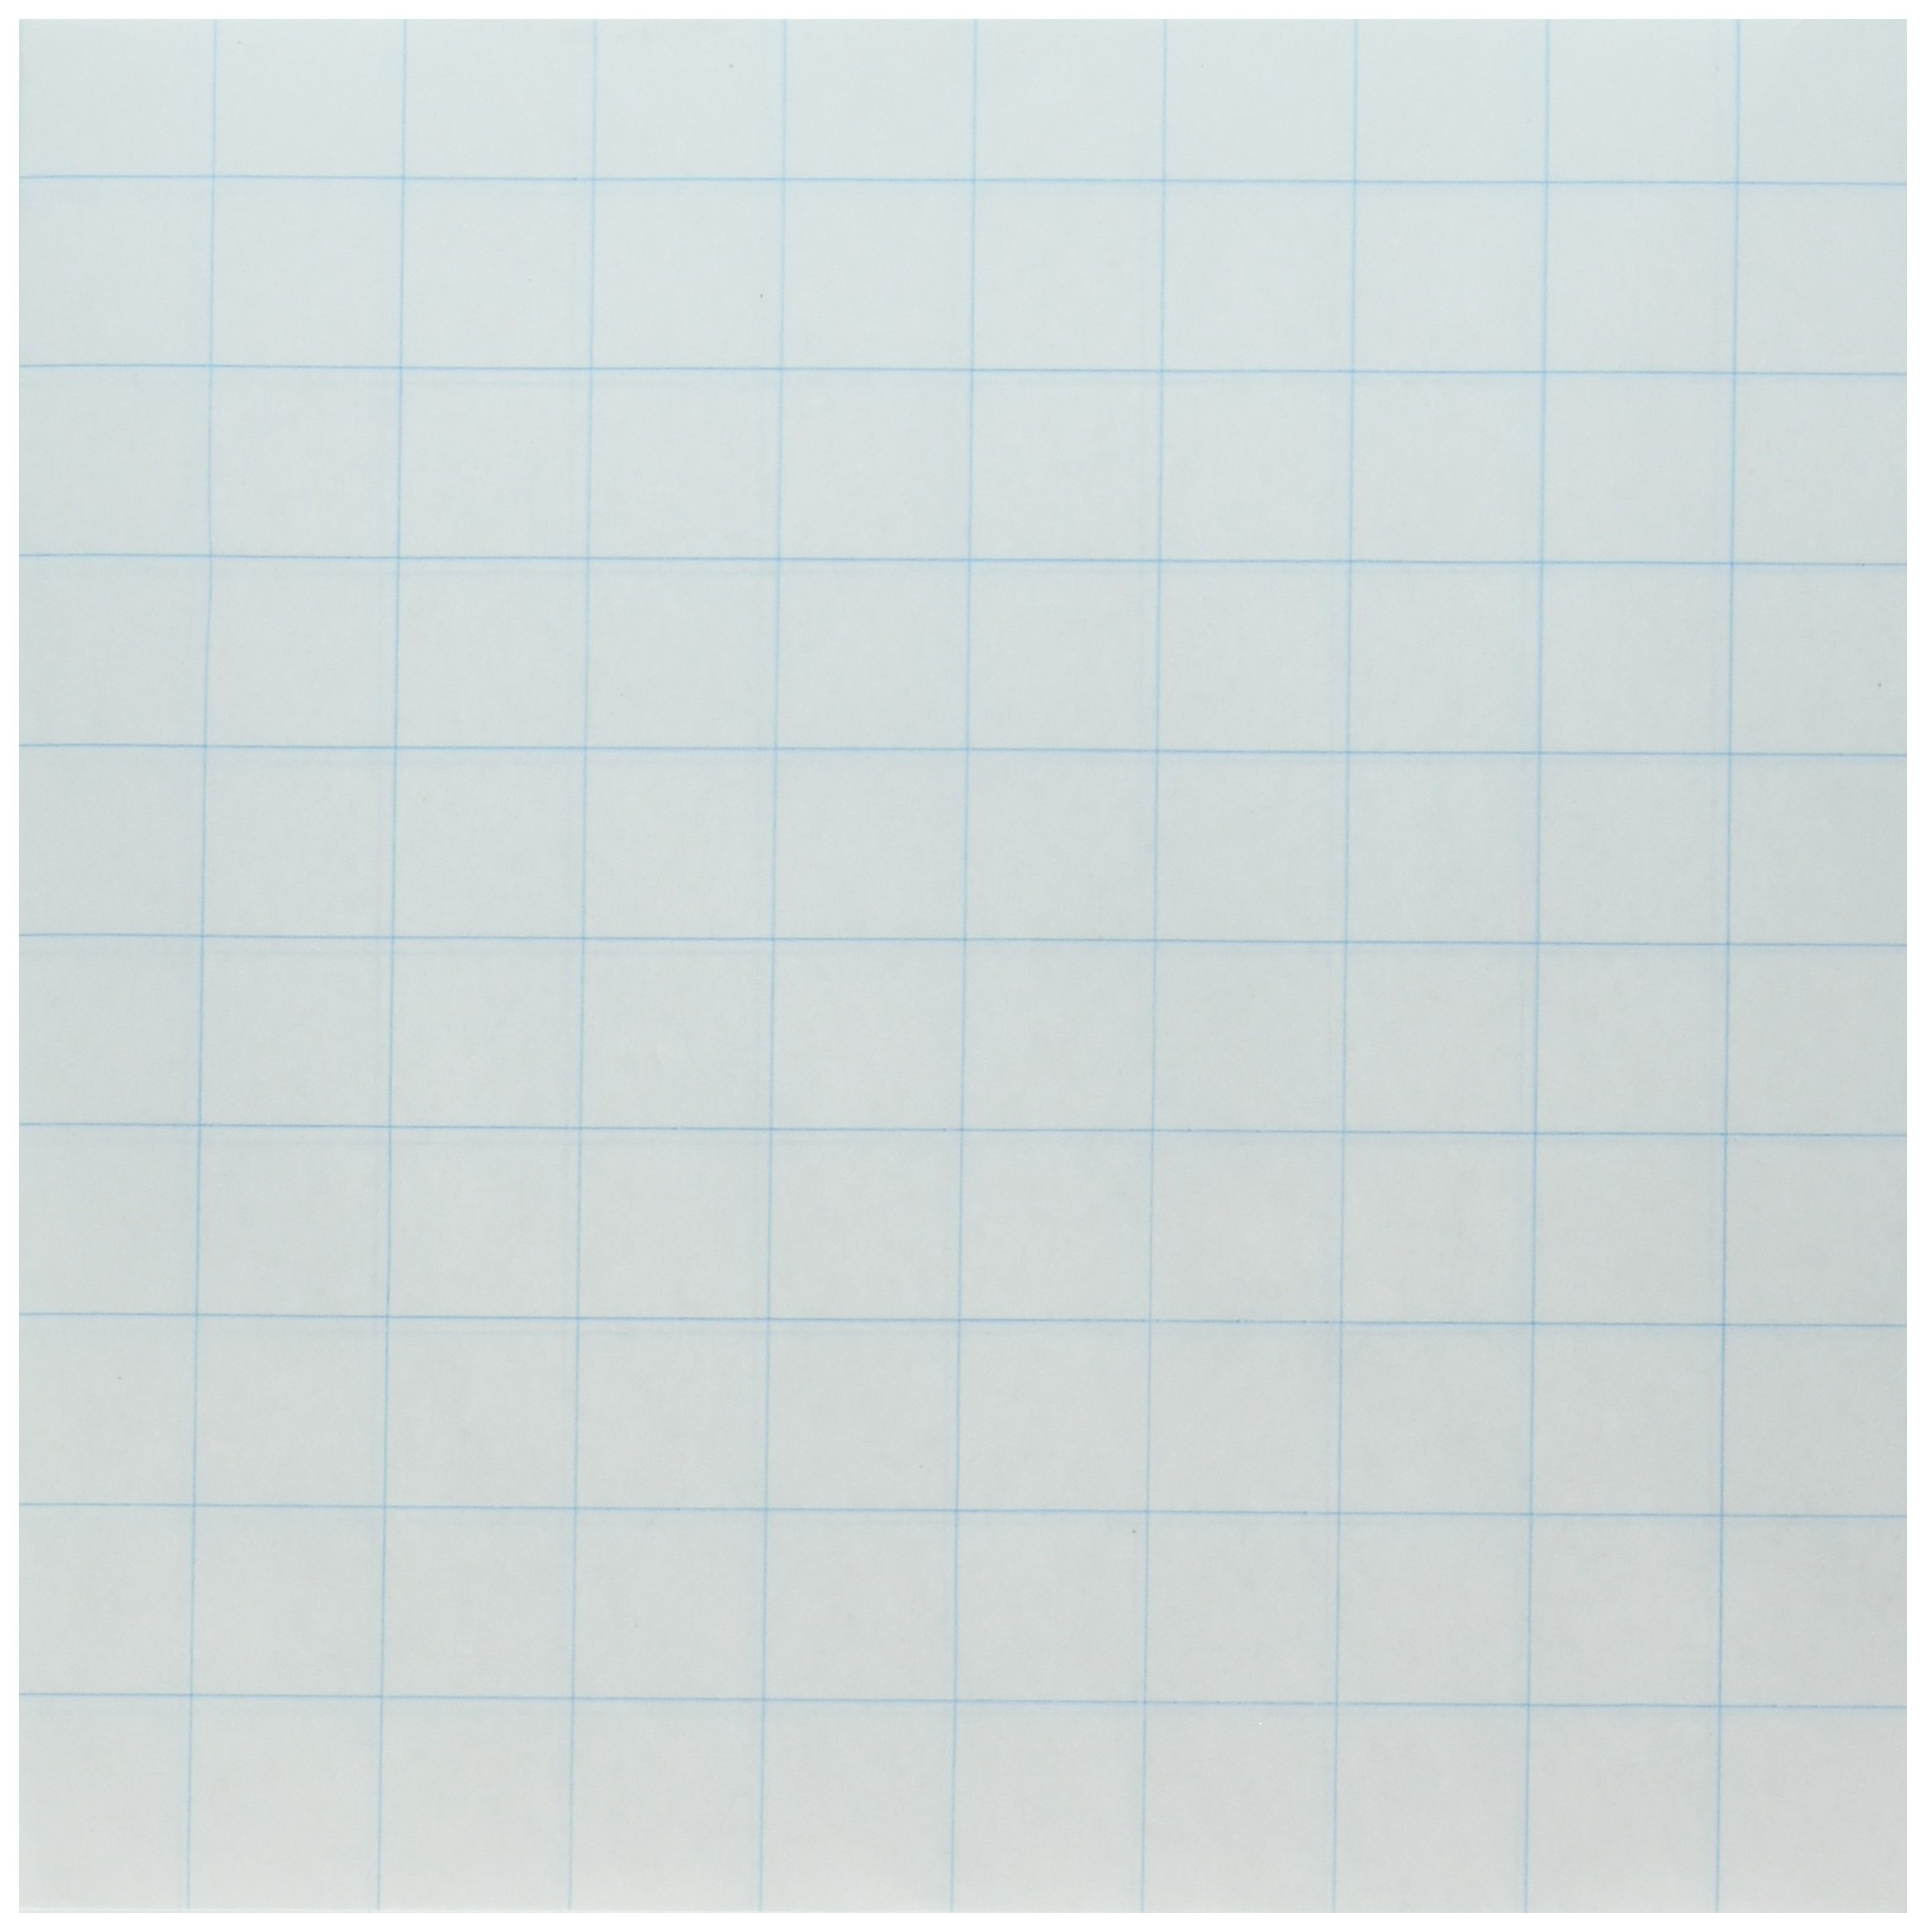 School Smart 3-Hole Punched Graph Paper with Chipboard Back - Pack of 500